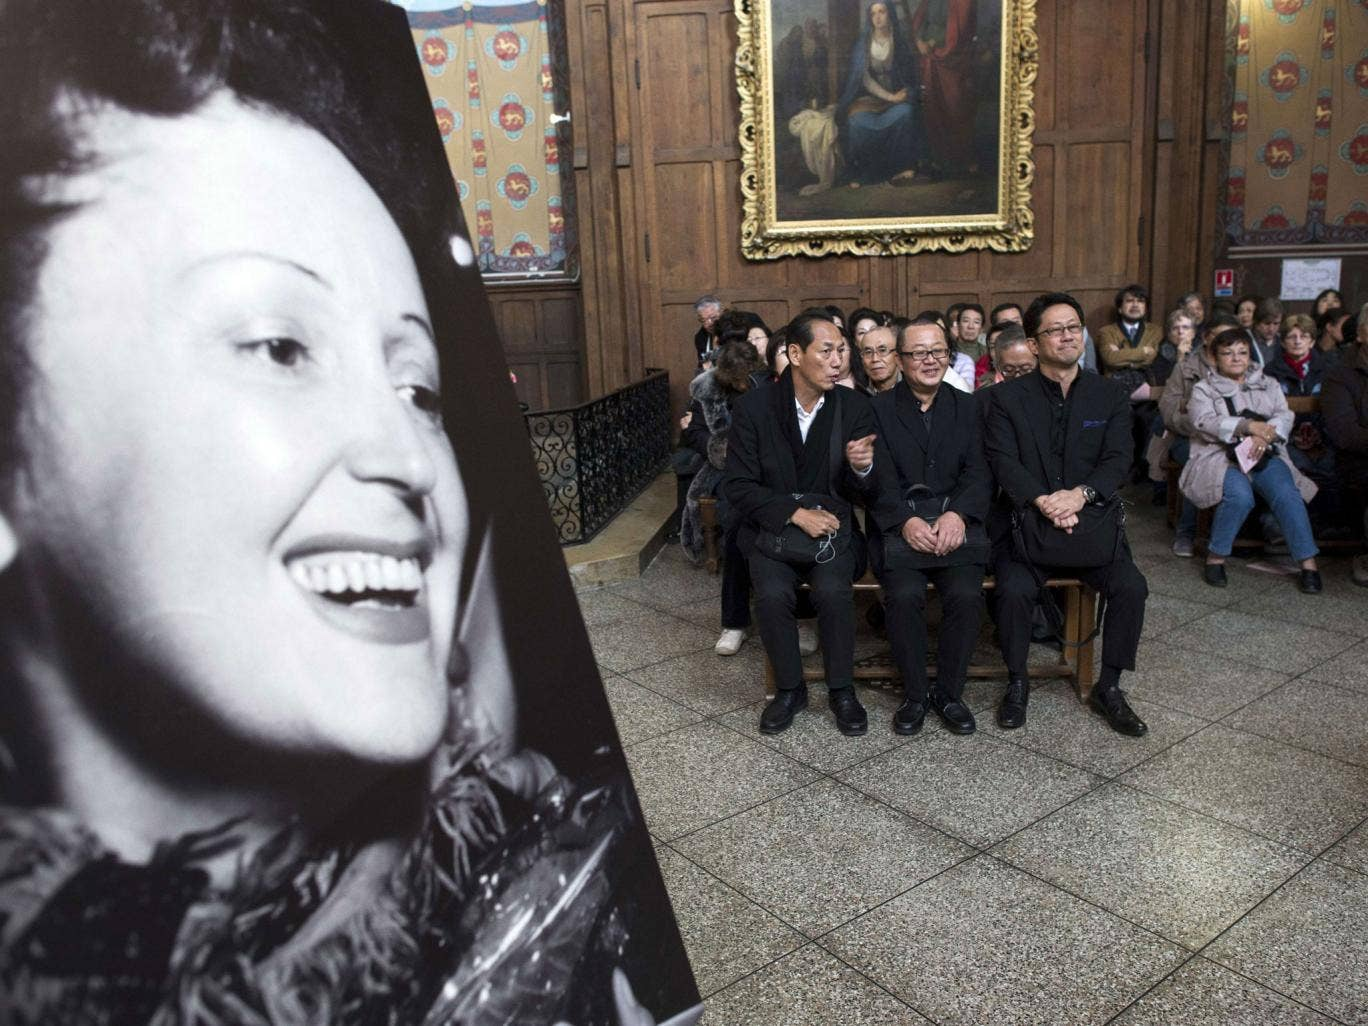 The congregation at the service for Edith Piaf, the French singer, whose song 'La Vie en Rose' has inspired many books and films